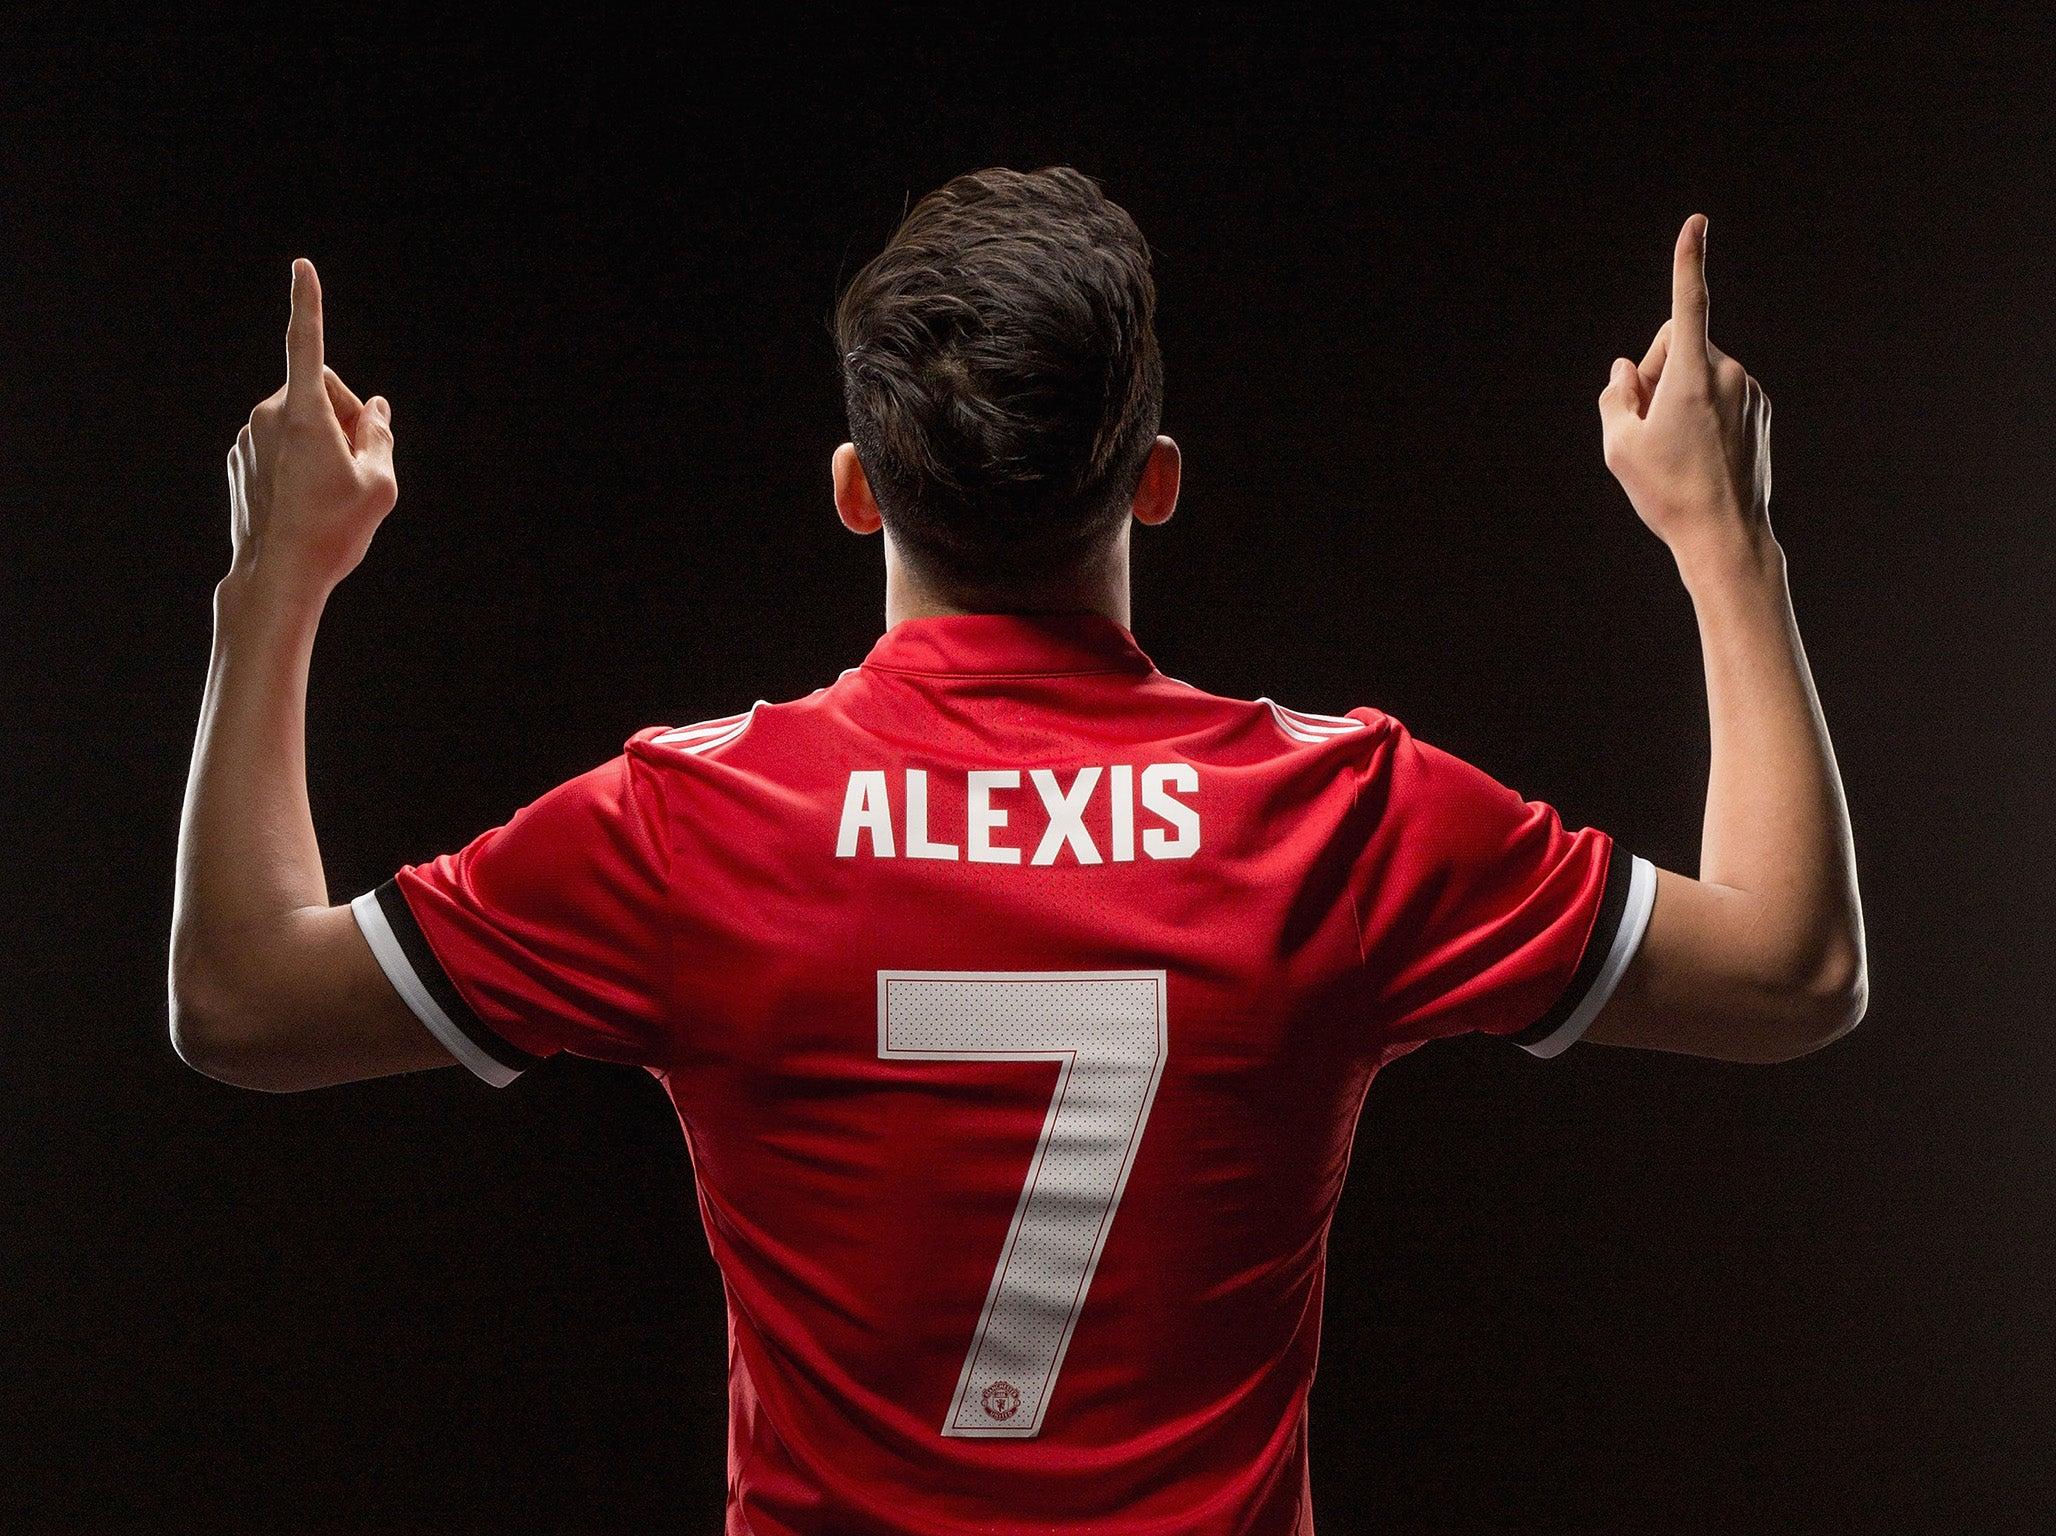 fb1fe39a41f Alexis Sanchez handed the famous number 7 shirt after completing move from  Arsenal to Manchester United